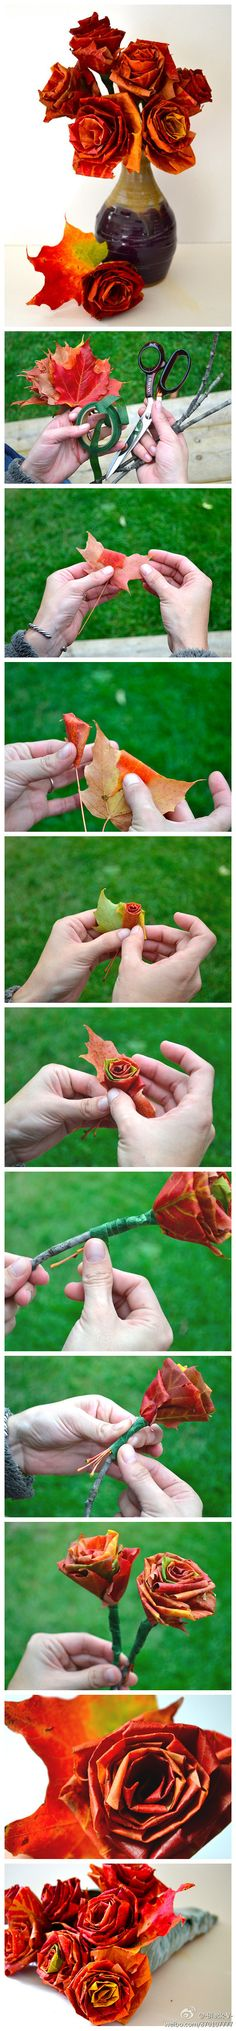 Making roses out of leafs